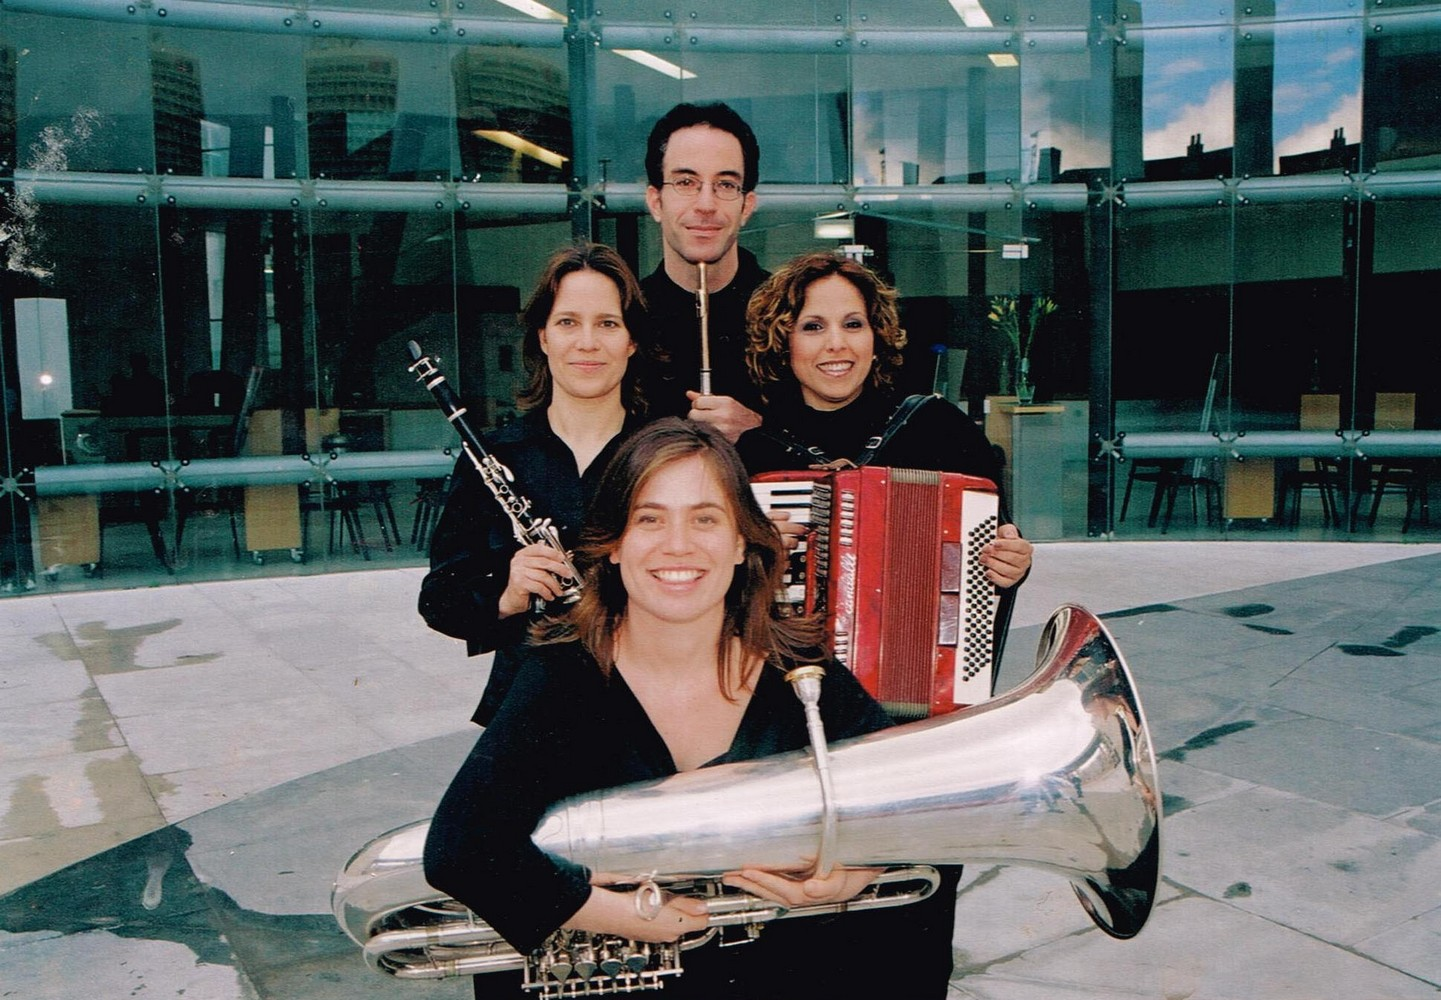 Avital Handler and colleagues